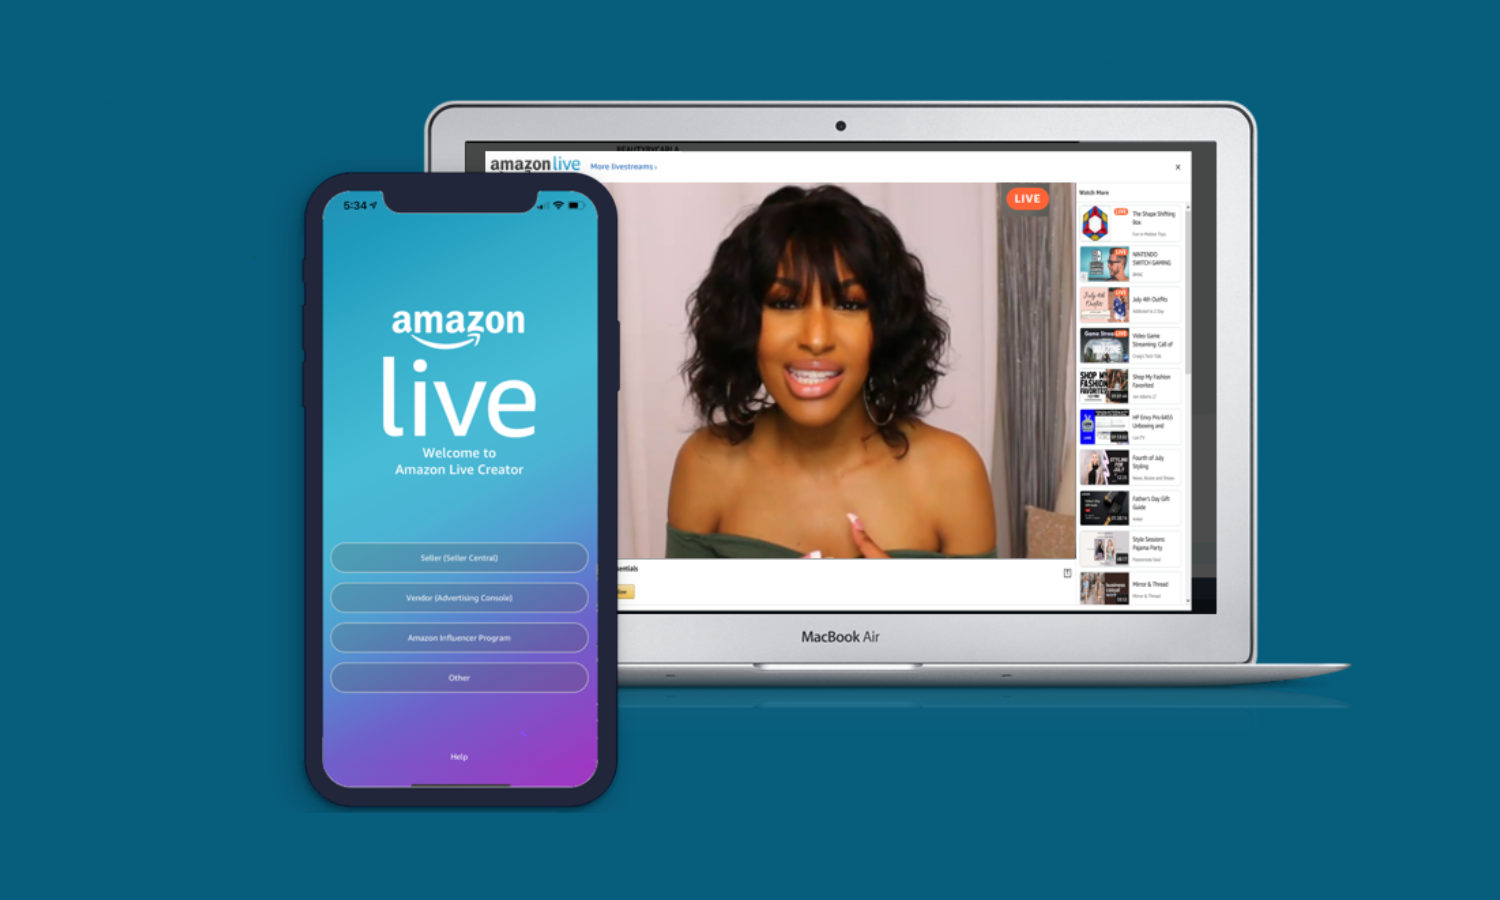 Streaming with Amazon Live is free and self service through the Amazon Live Creator app